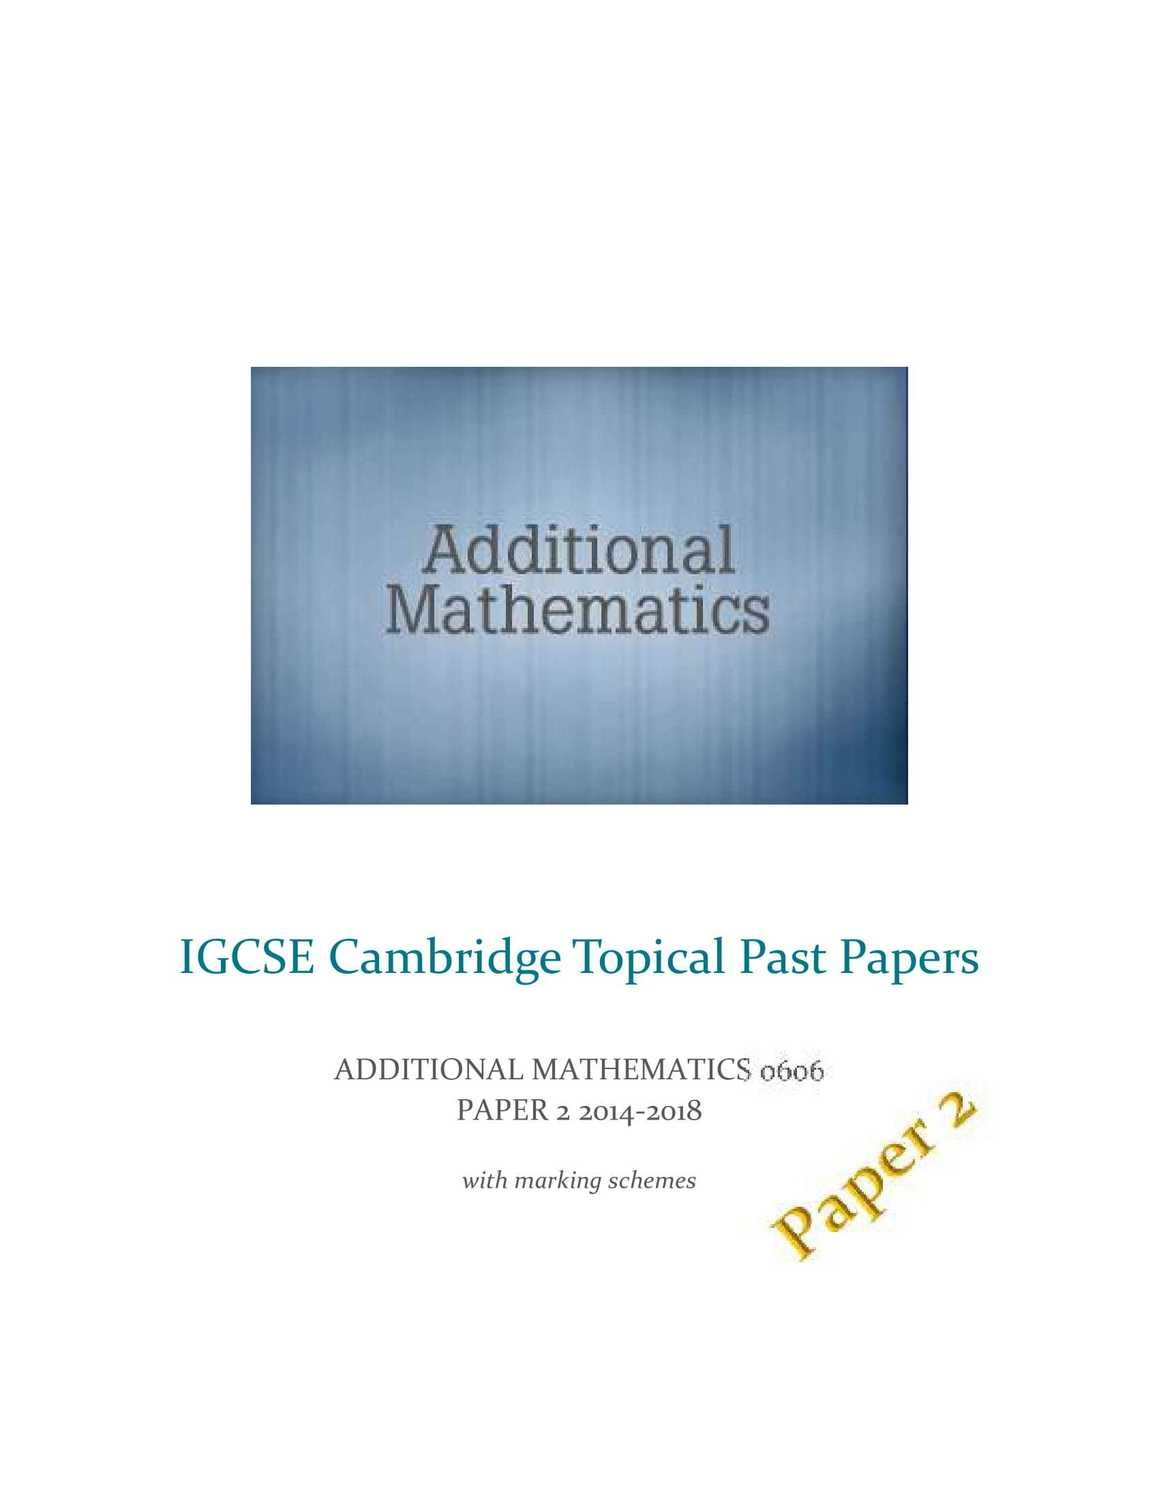 IGCSE Cambridge Add Maths 0606 Paper2 Topical Past Papers